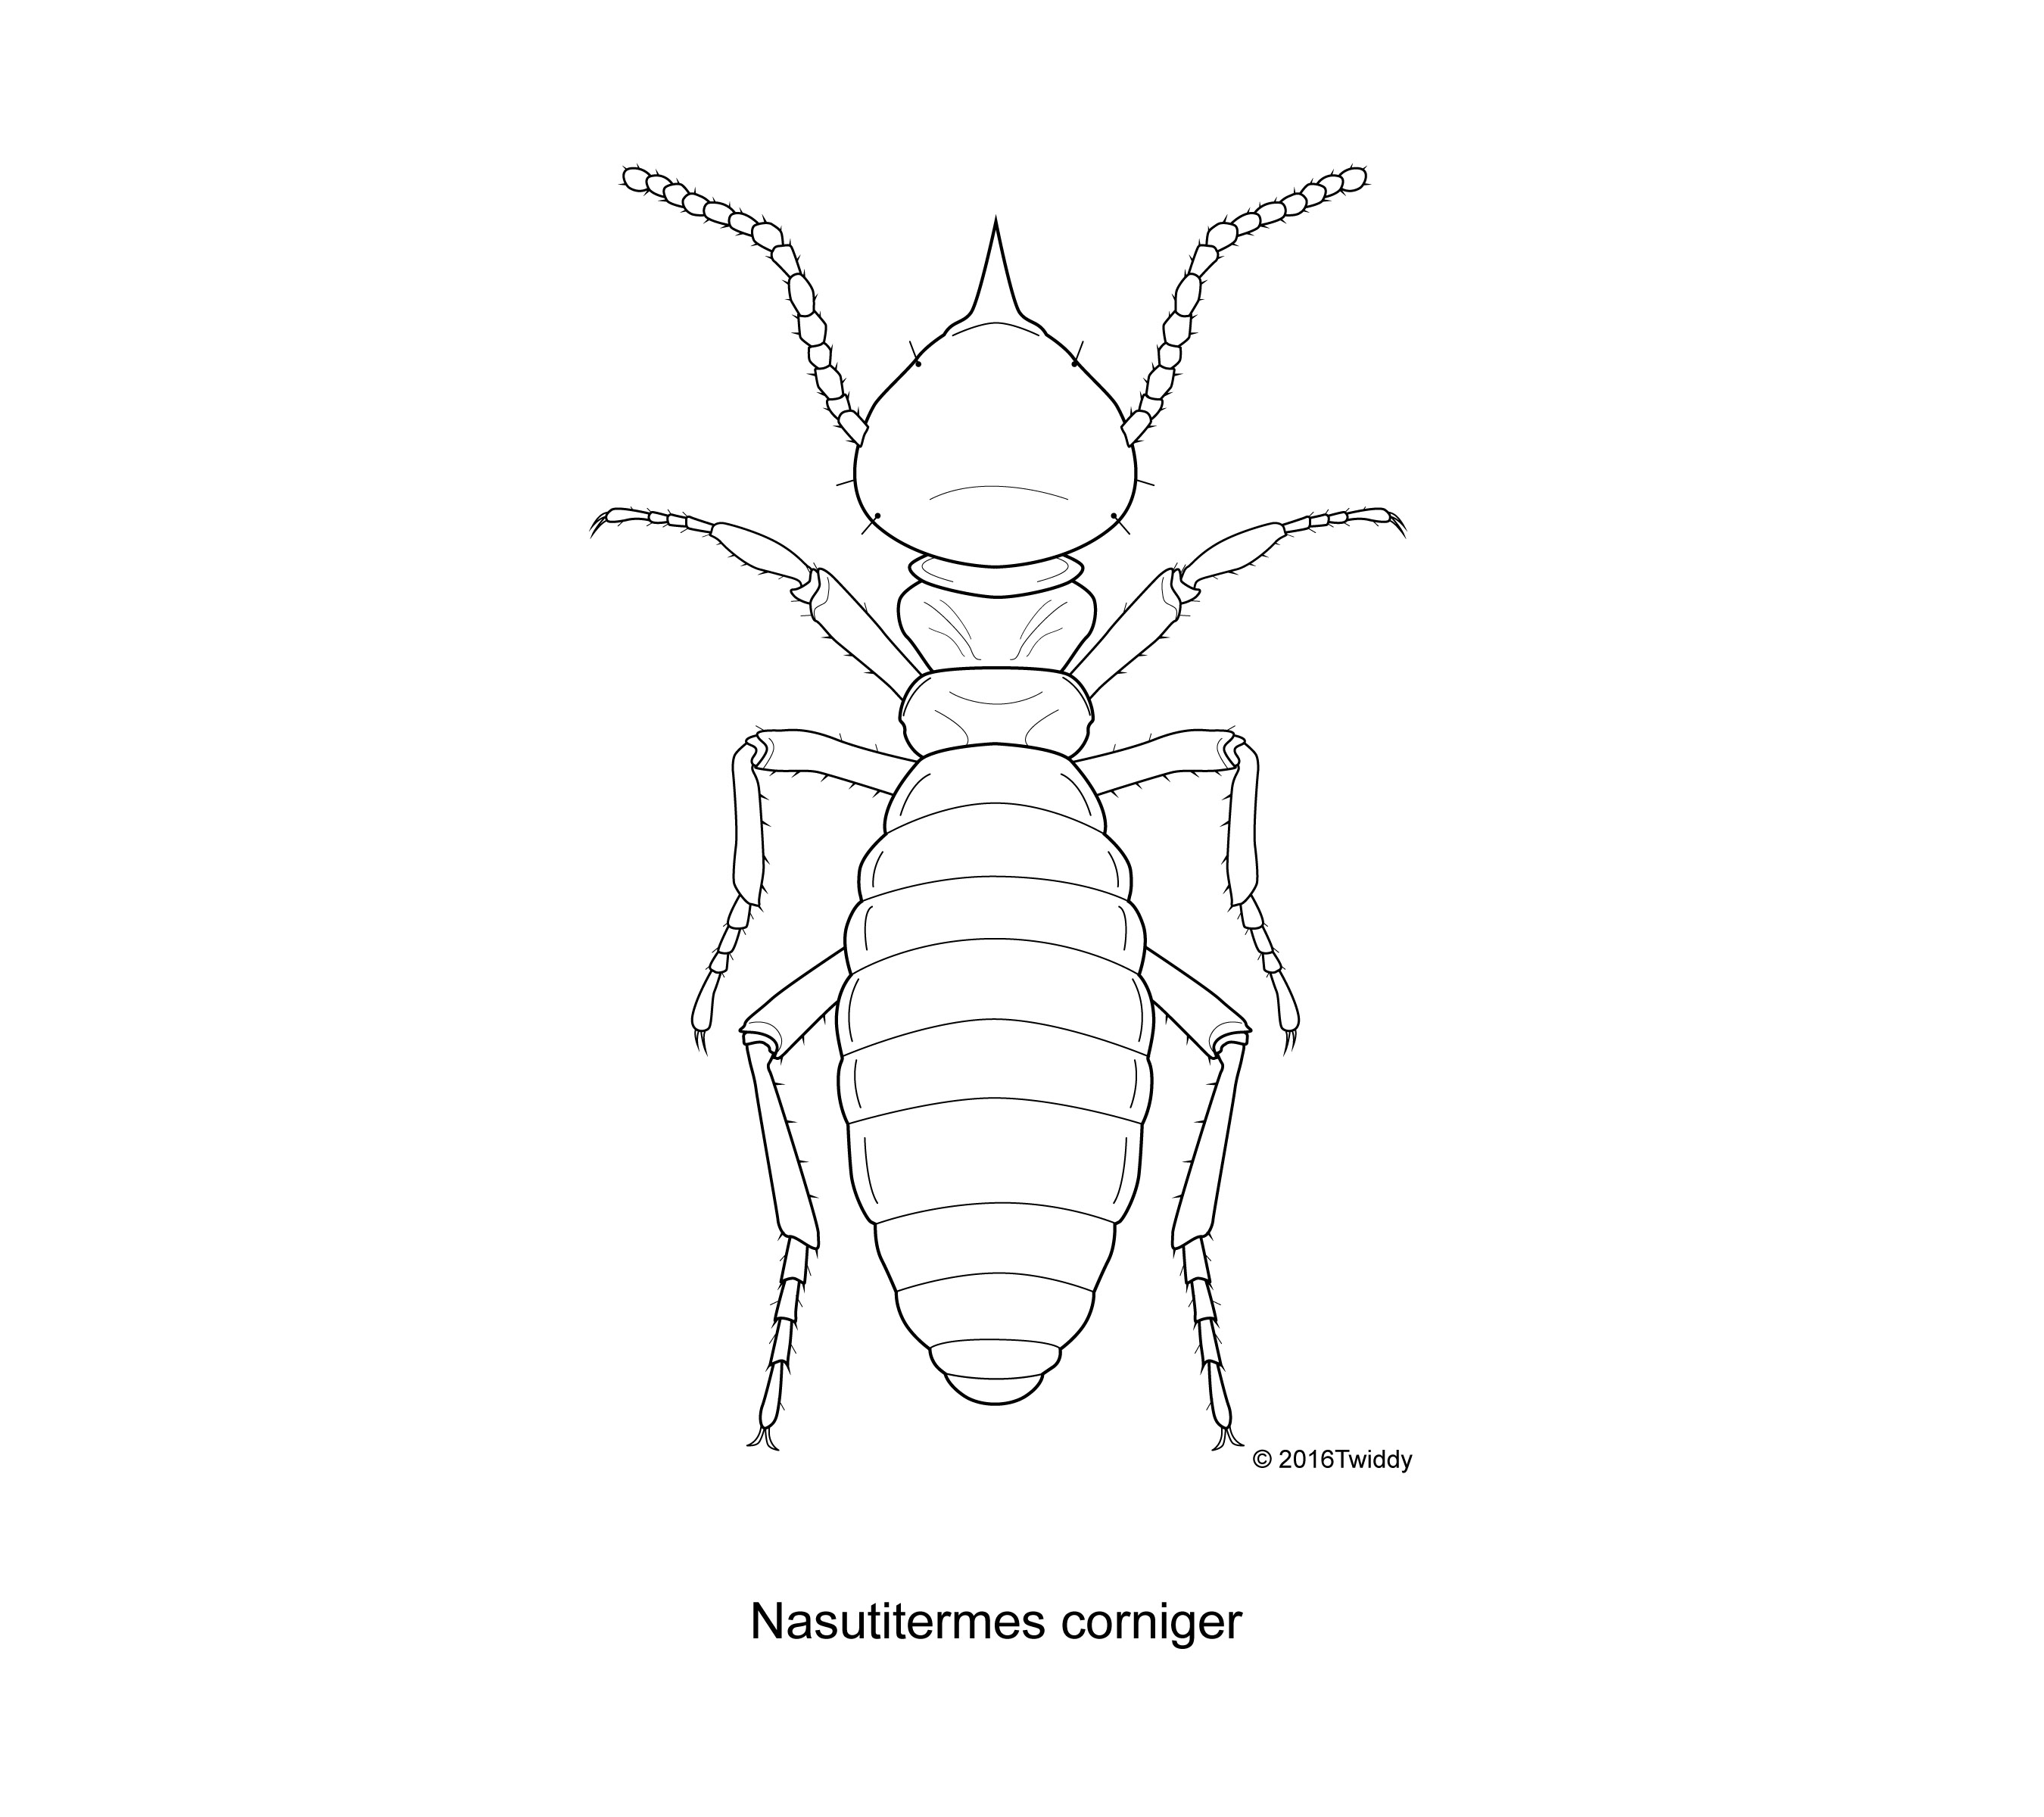 Termite Drawing at GetDrawings.com | Free for personal use Termite ...